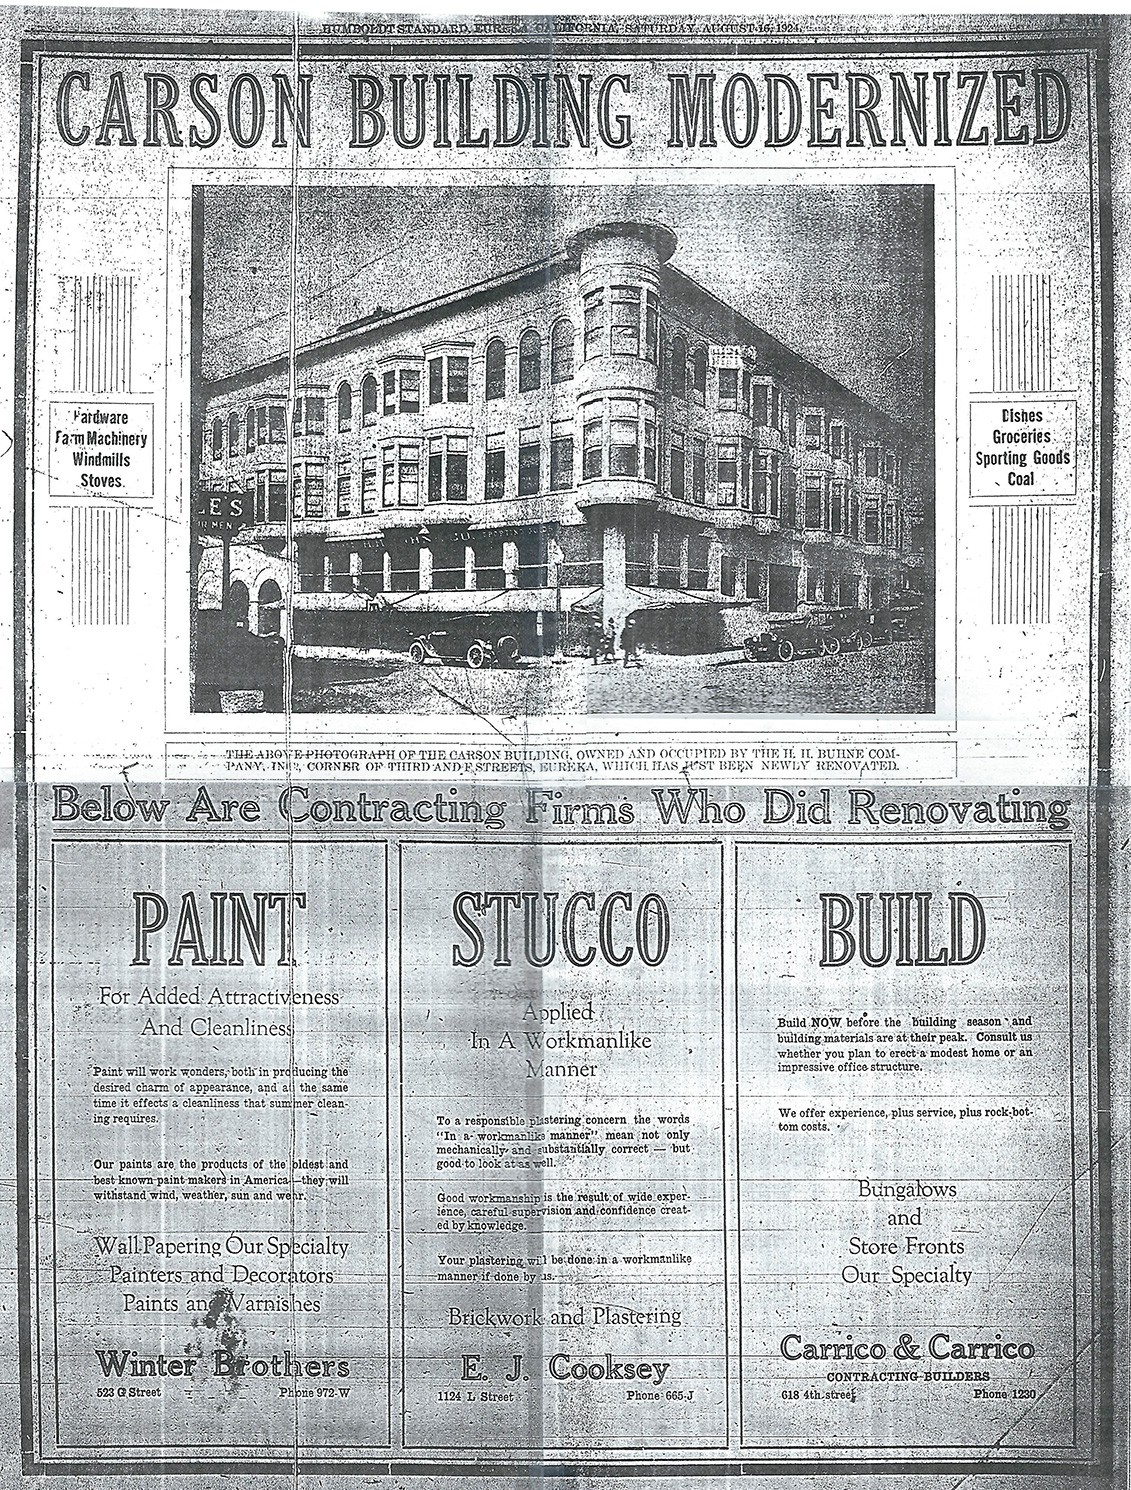 An article which ran in the Humboldt Standard newspaper on June 13, 1924 describes a renovation of the Carson Block Building in which stucco was added to the brick exterior to create the appearance of stone.